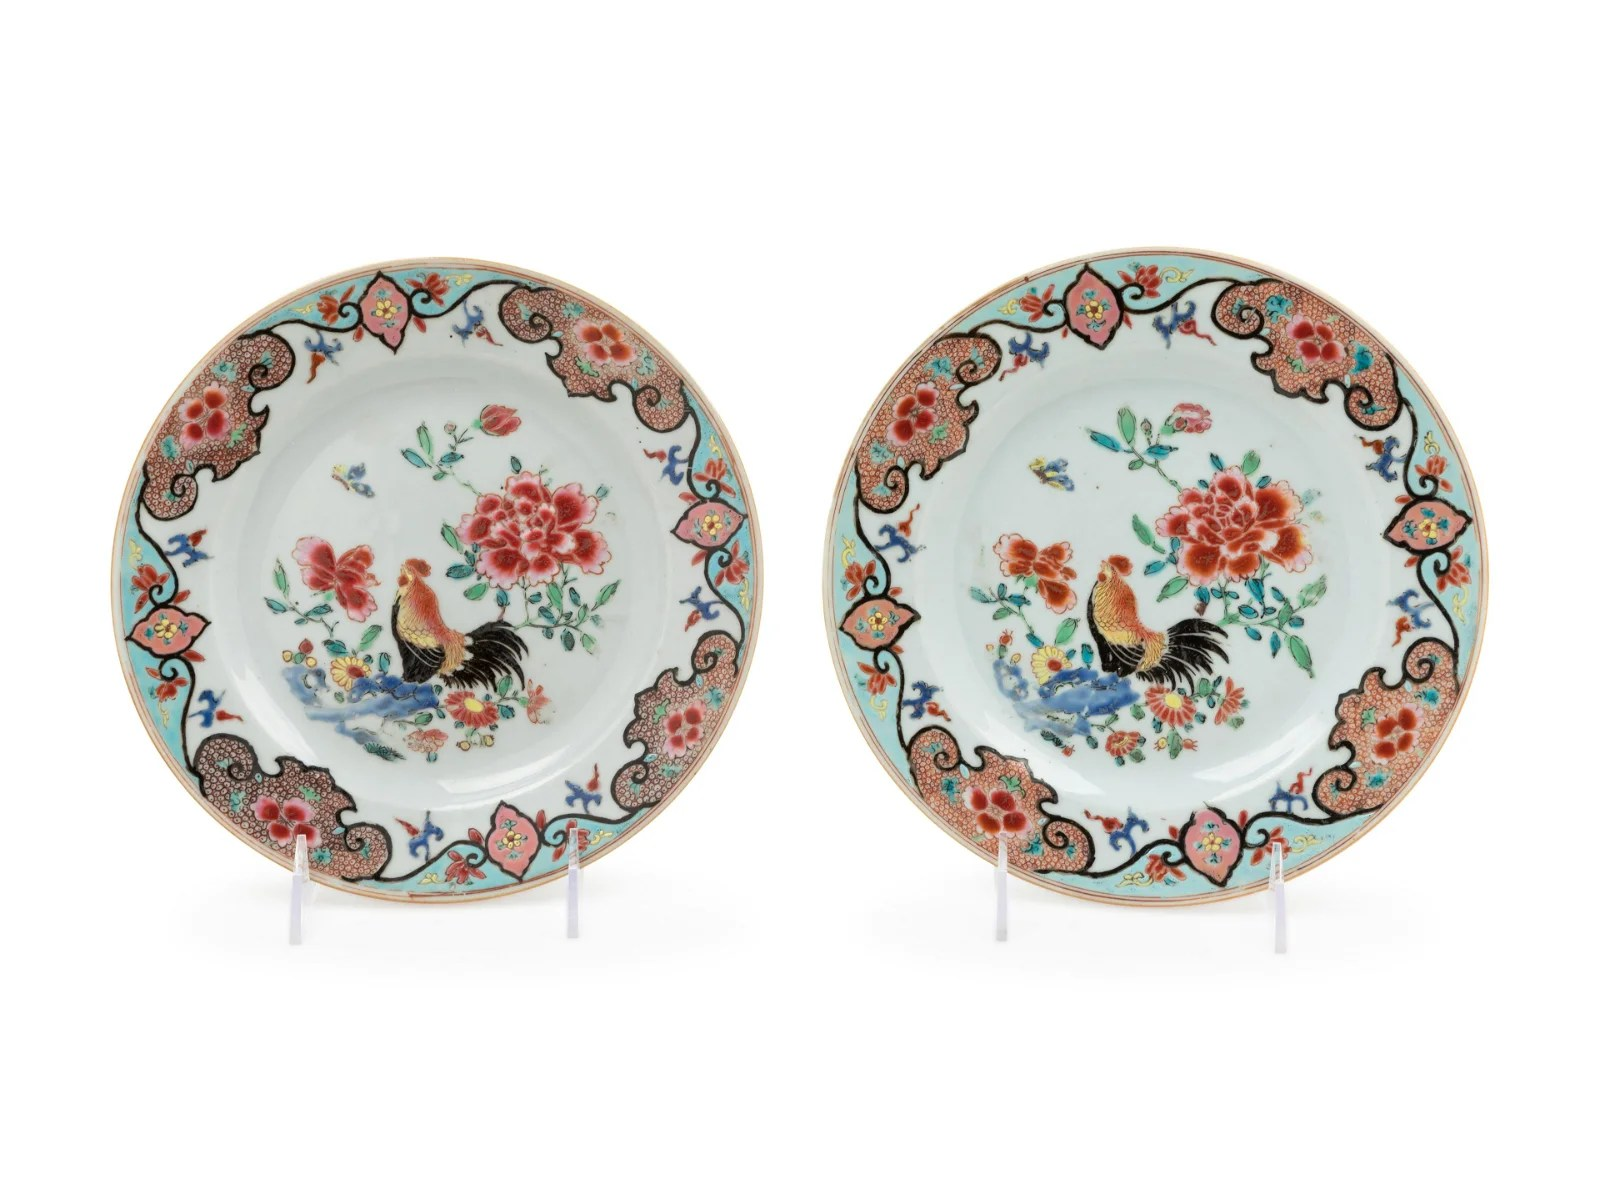 A Pair of Chinese Export Famille Rose Porcelain Plates